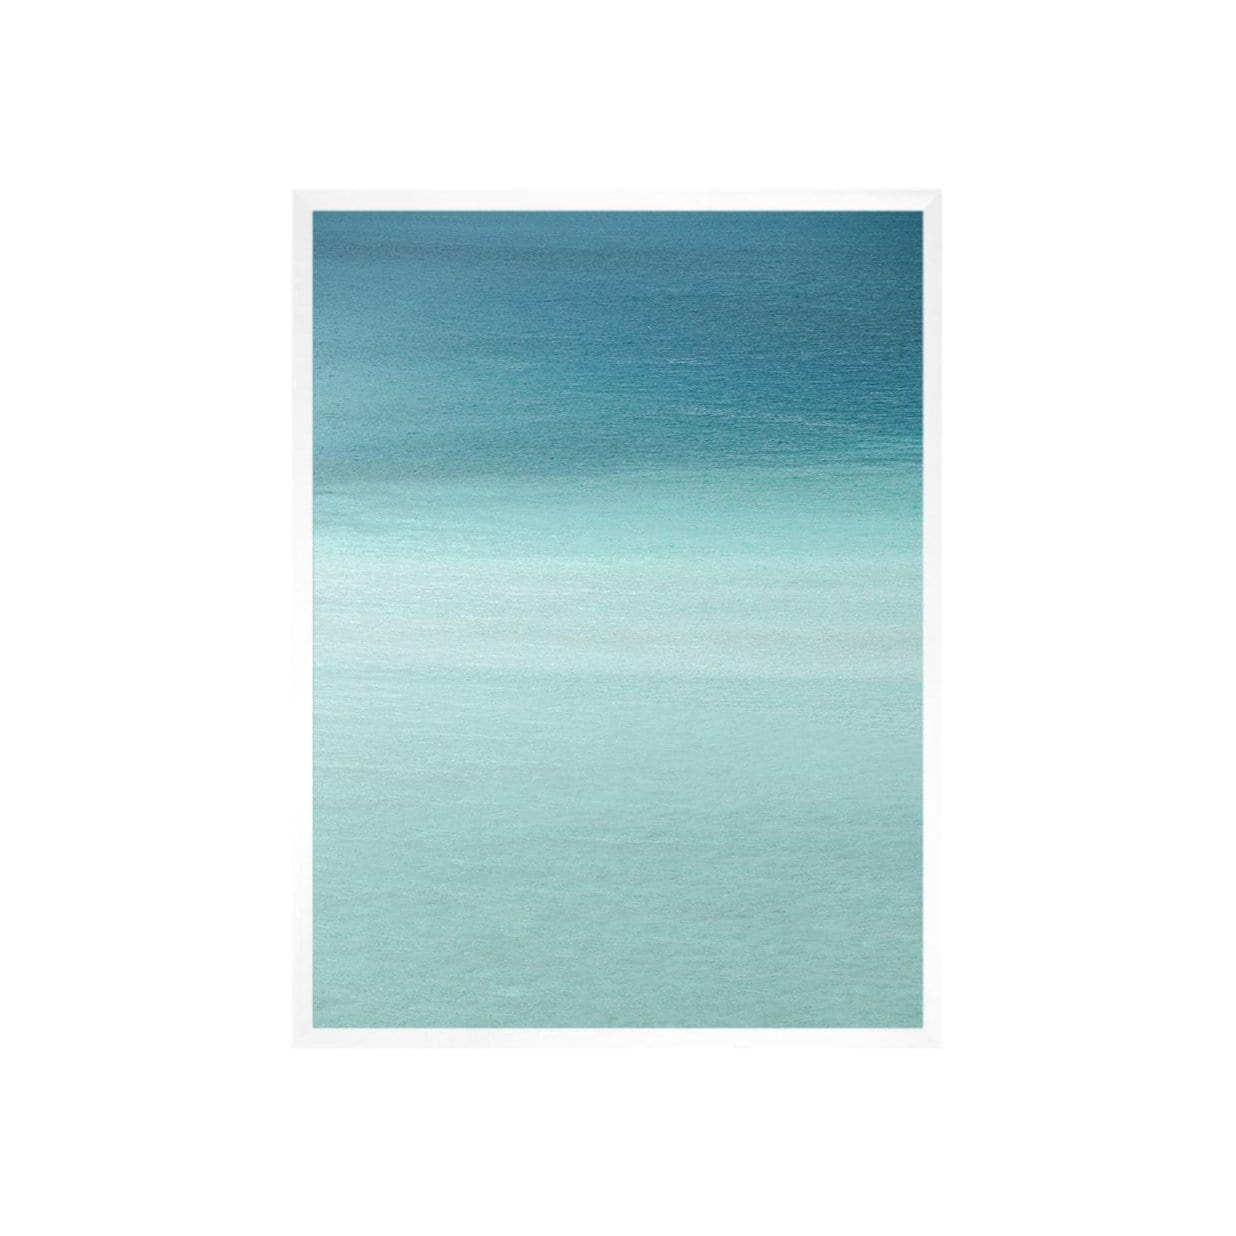 Carley Rudd Photography + Prints 30 x 40 / white frame, no mat Sea of Cortez Print